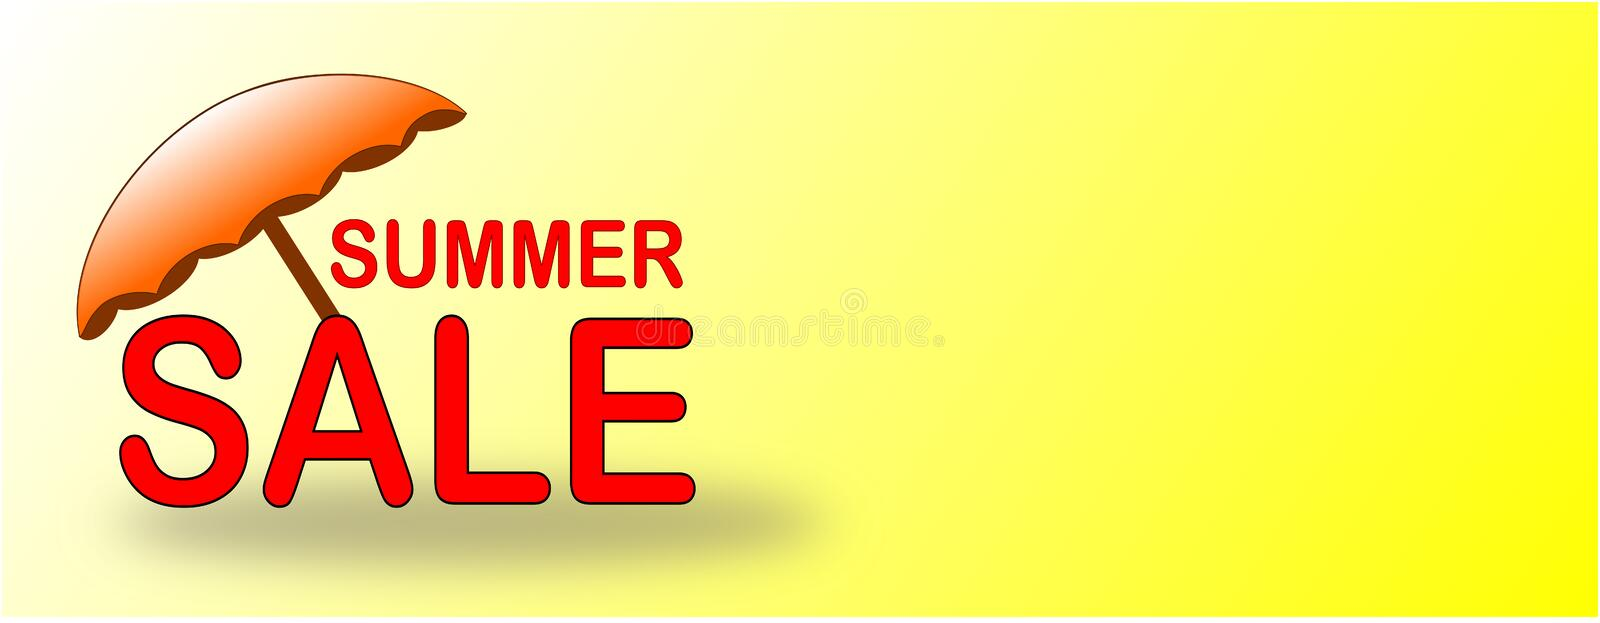 Summer Sale banner with orange beach umbrella royalty free stock images